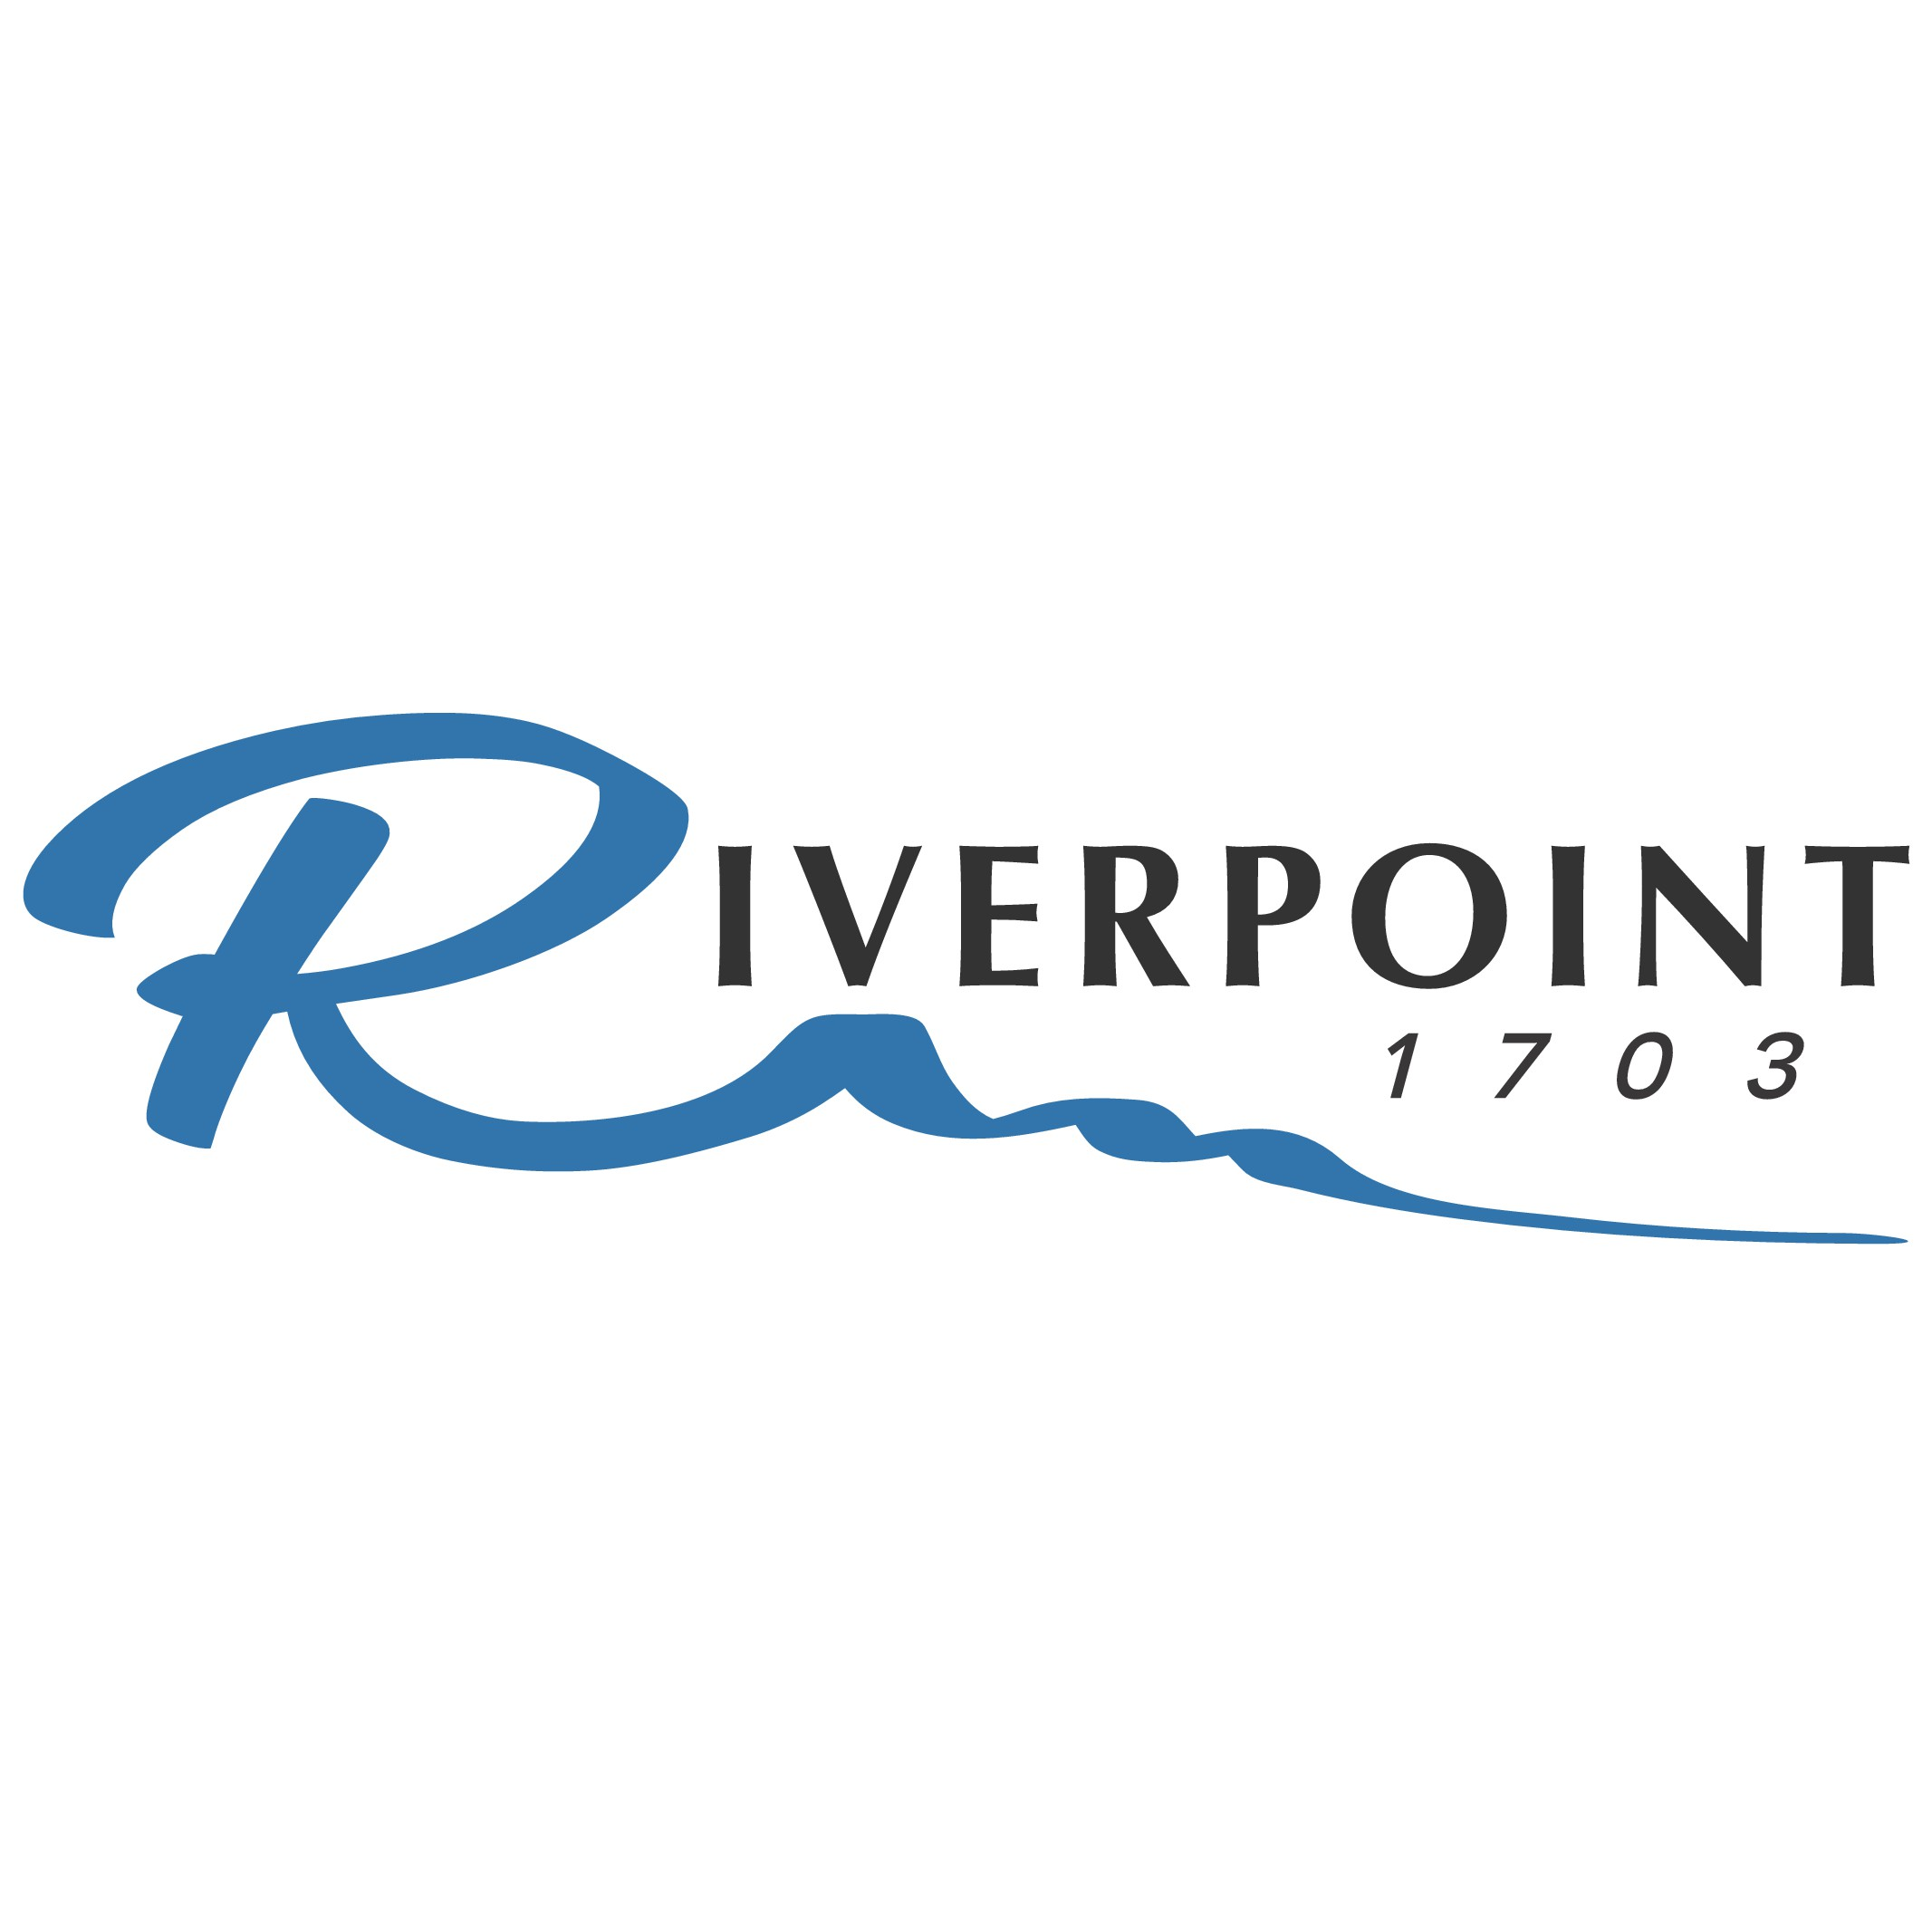 Create an earthy standout logo for our riverfront function room